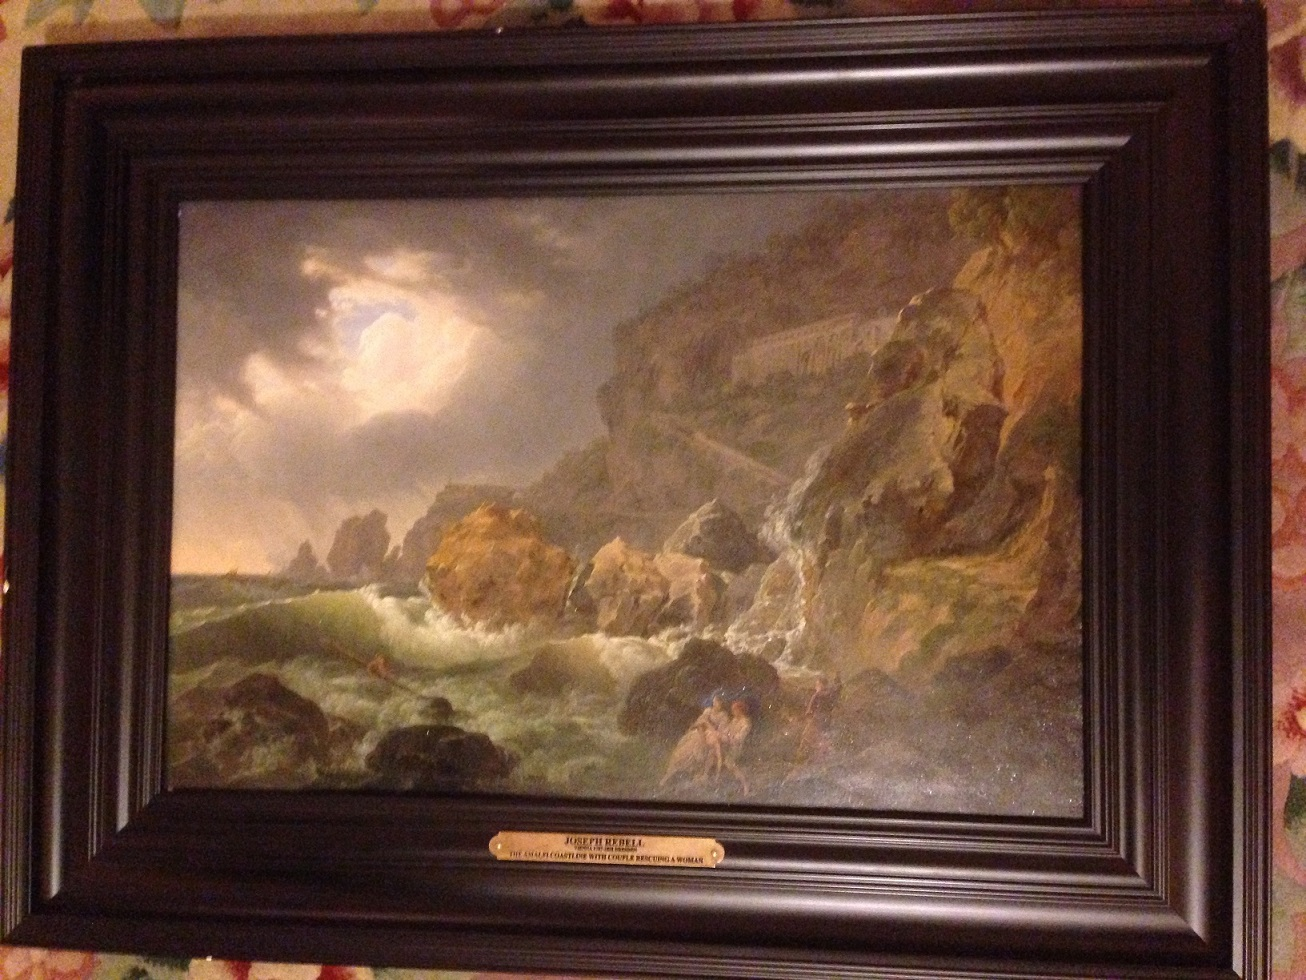 THE AMALFI COASTLINE WITH THE CAPUCHIN MONASTERY IN A TEMPEST AND A COUPLE RESCUING A WOMAN FROM THE RAGING SEA